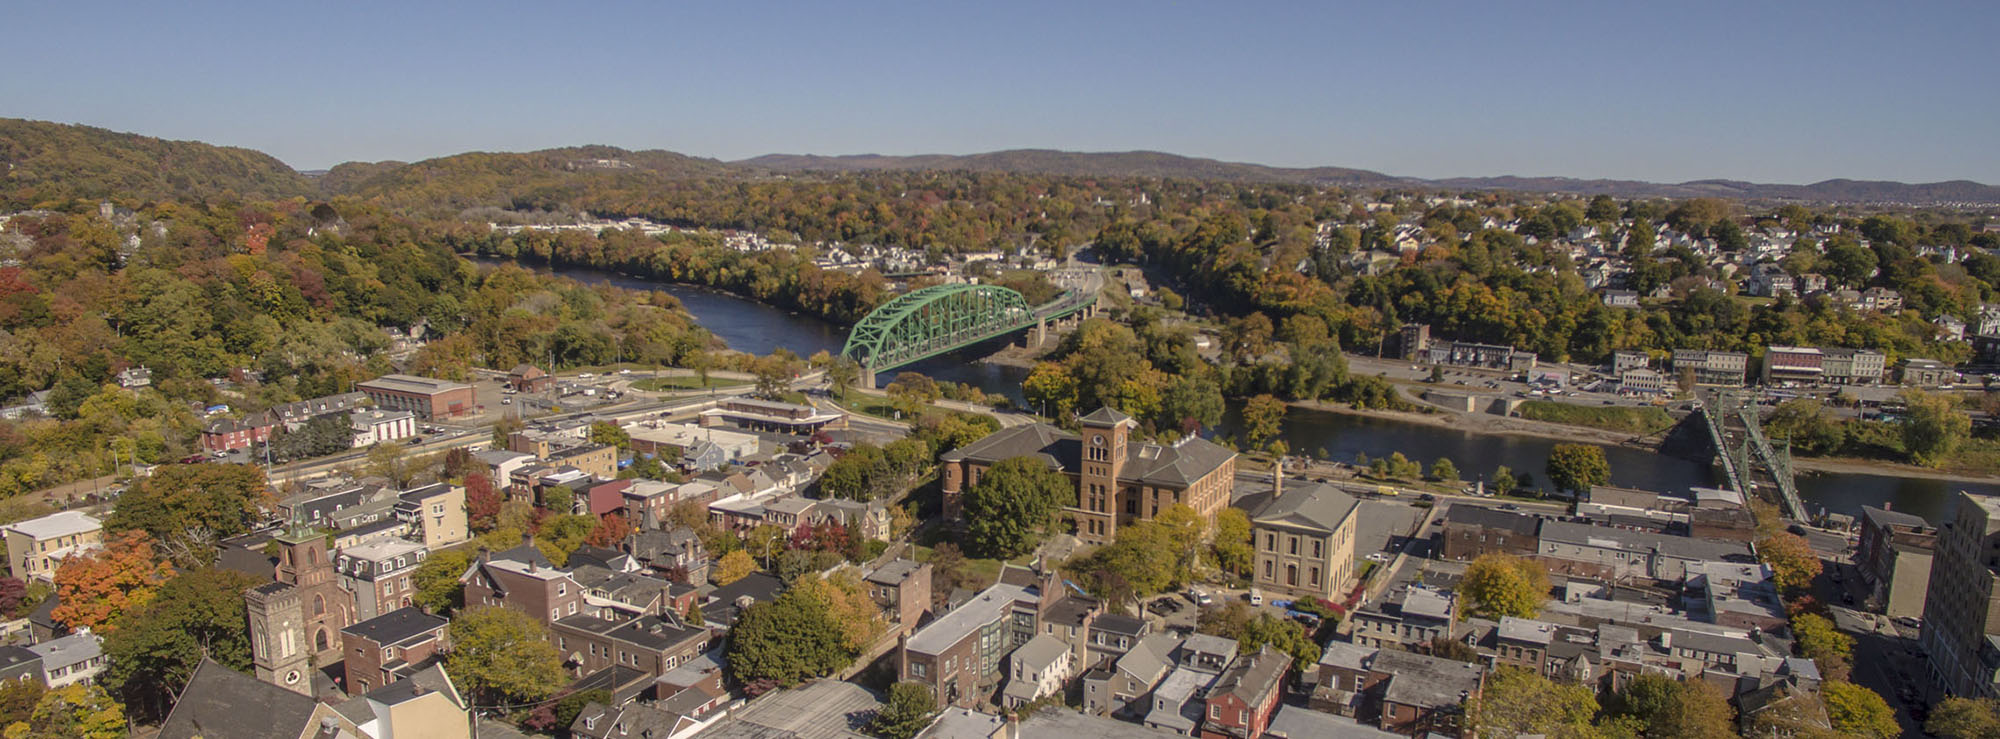 Aerial photo of Easton